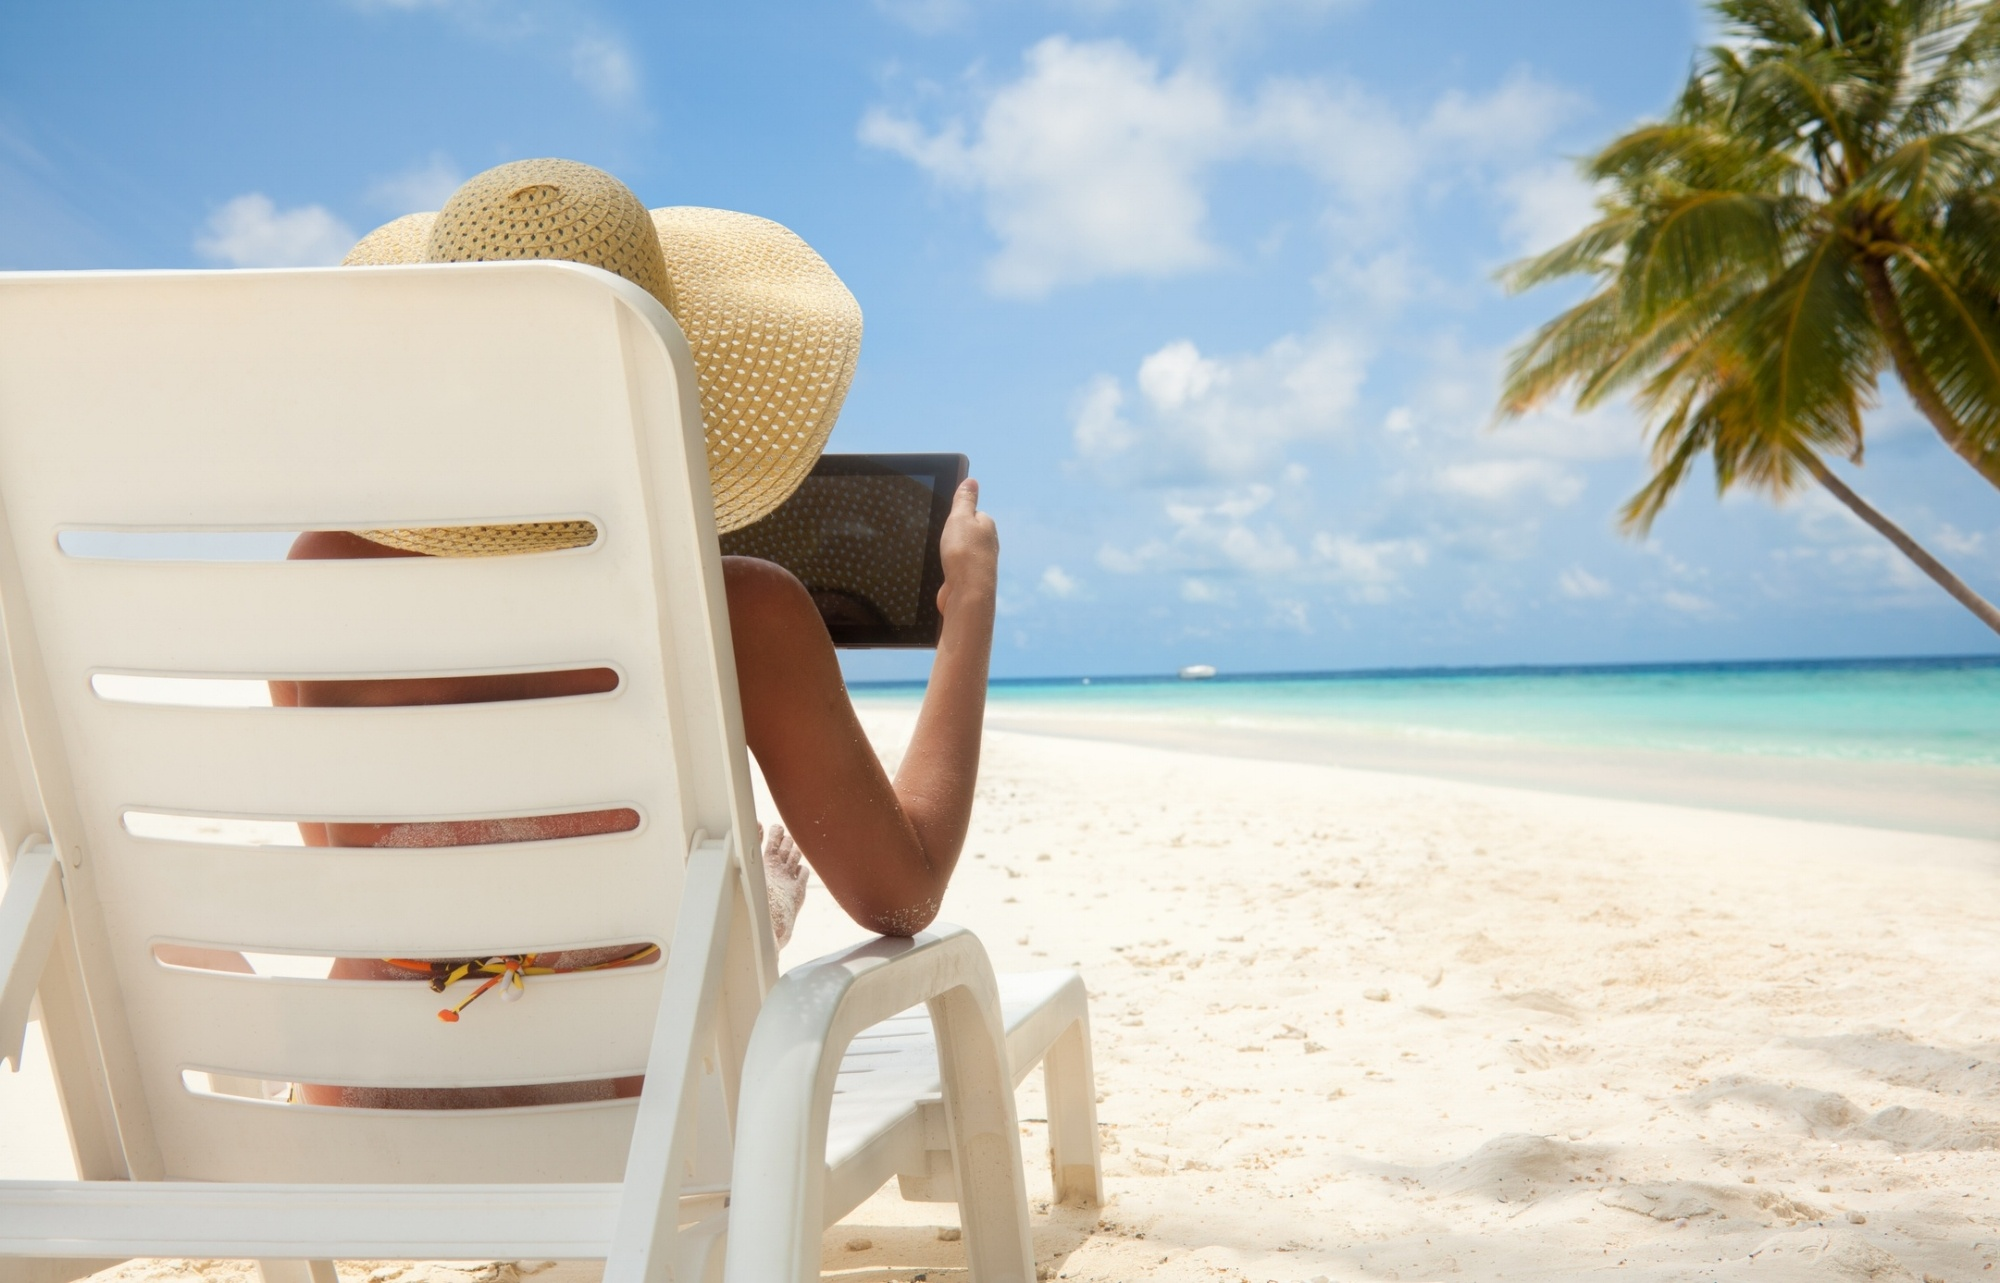 Book Your Trip To Ambergris Caye!